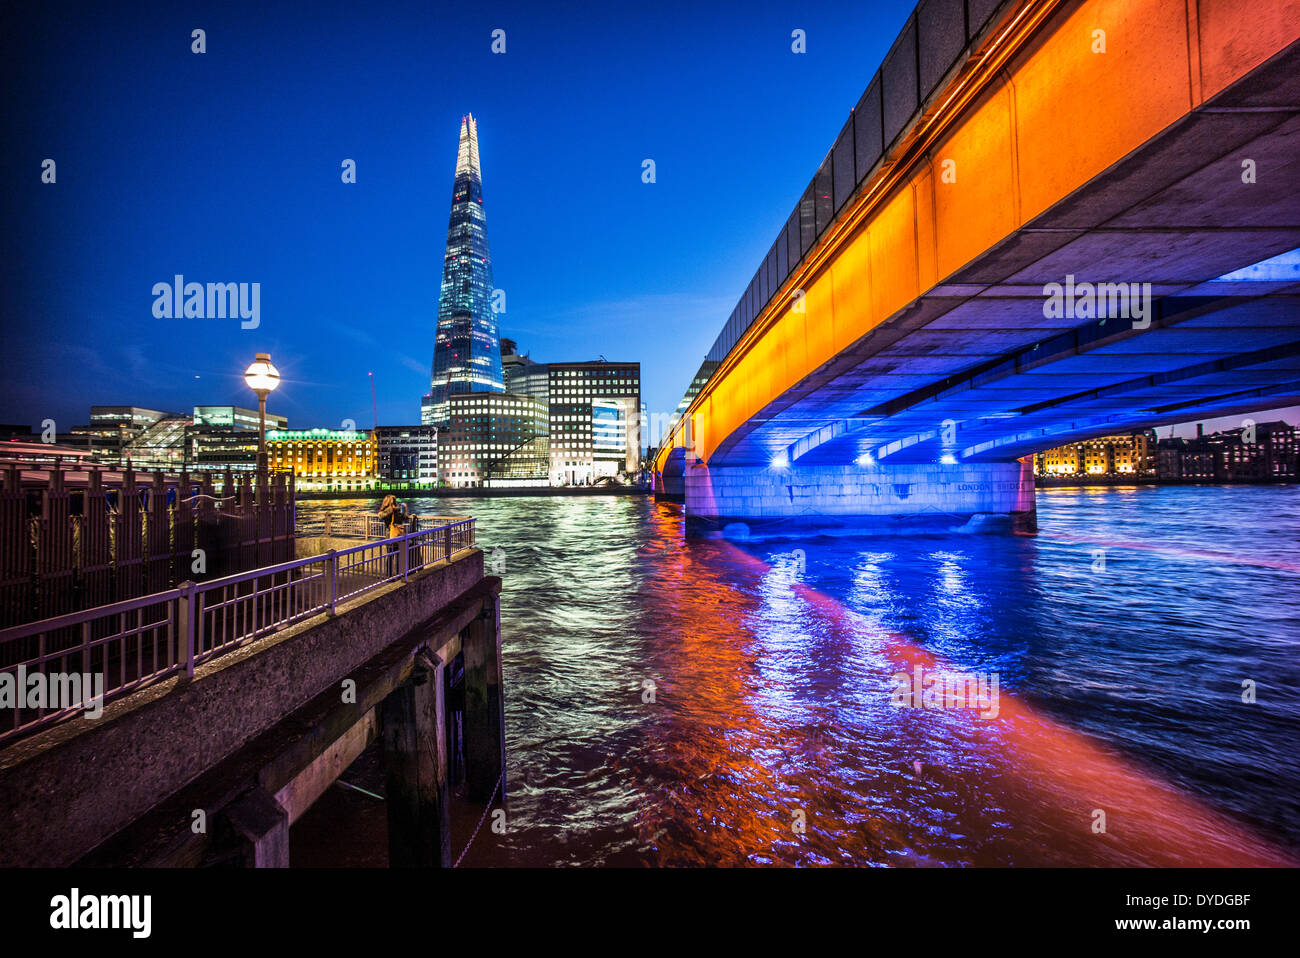 The Shard and London Bridge at dusk. - Stock Image